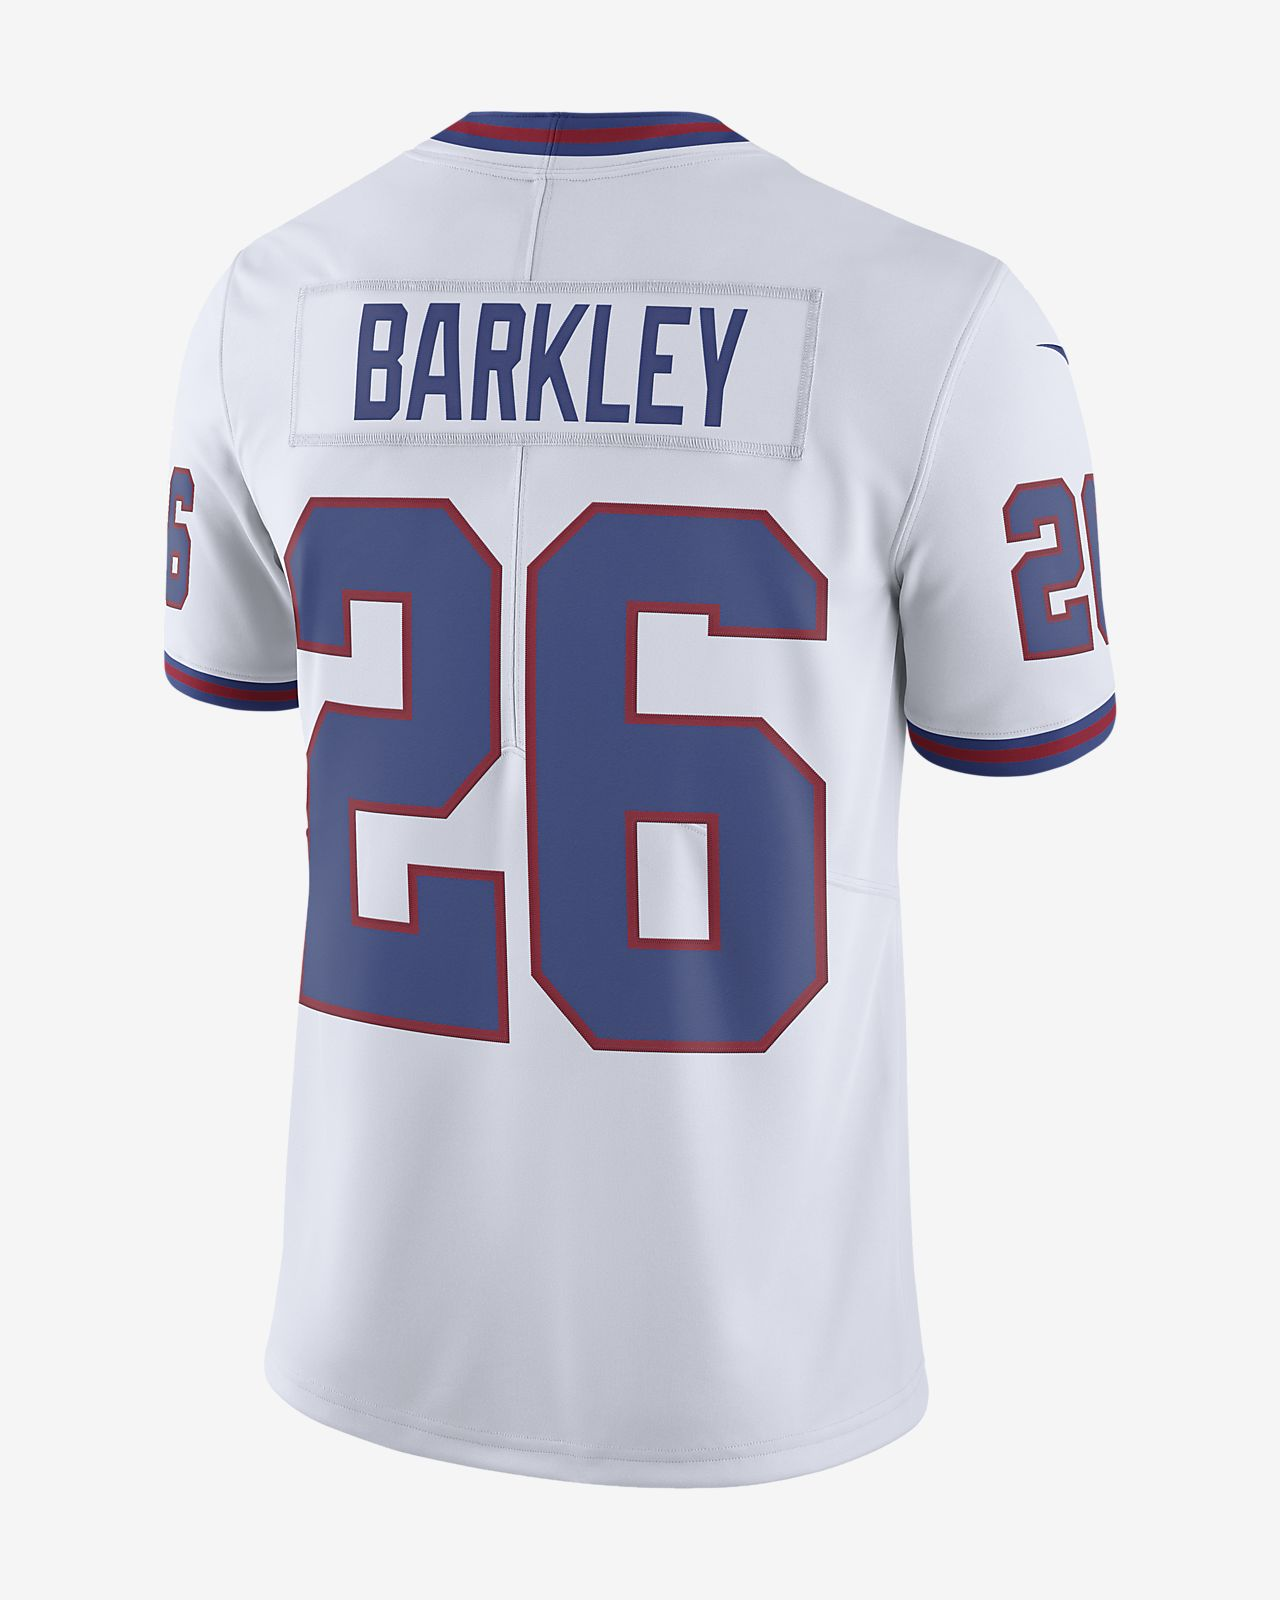 new style 2ccc8 3f8cd NFL New York Giants Limited (Saquon Barkley) Men's Football Jersey